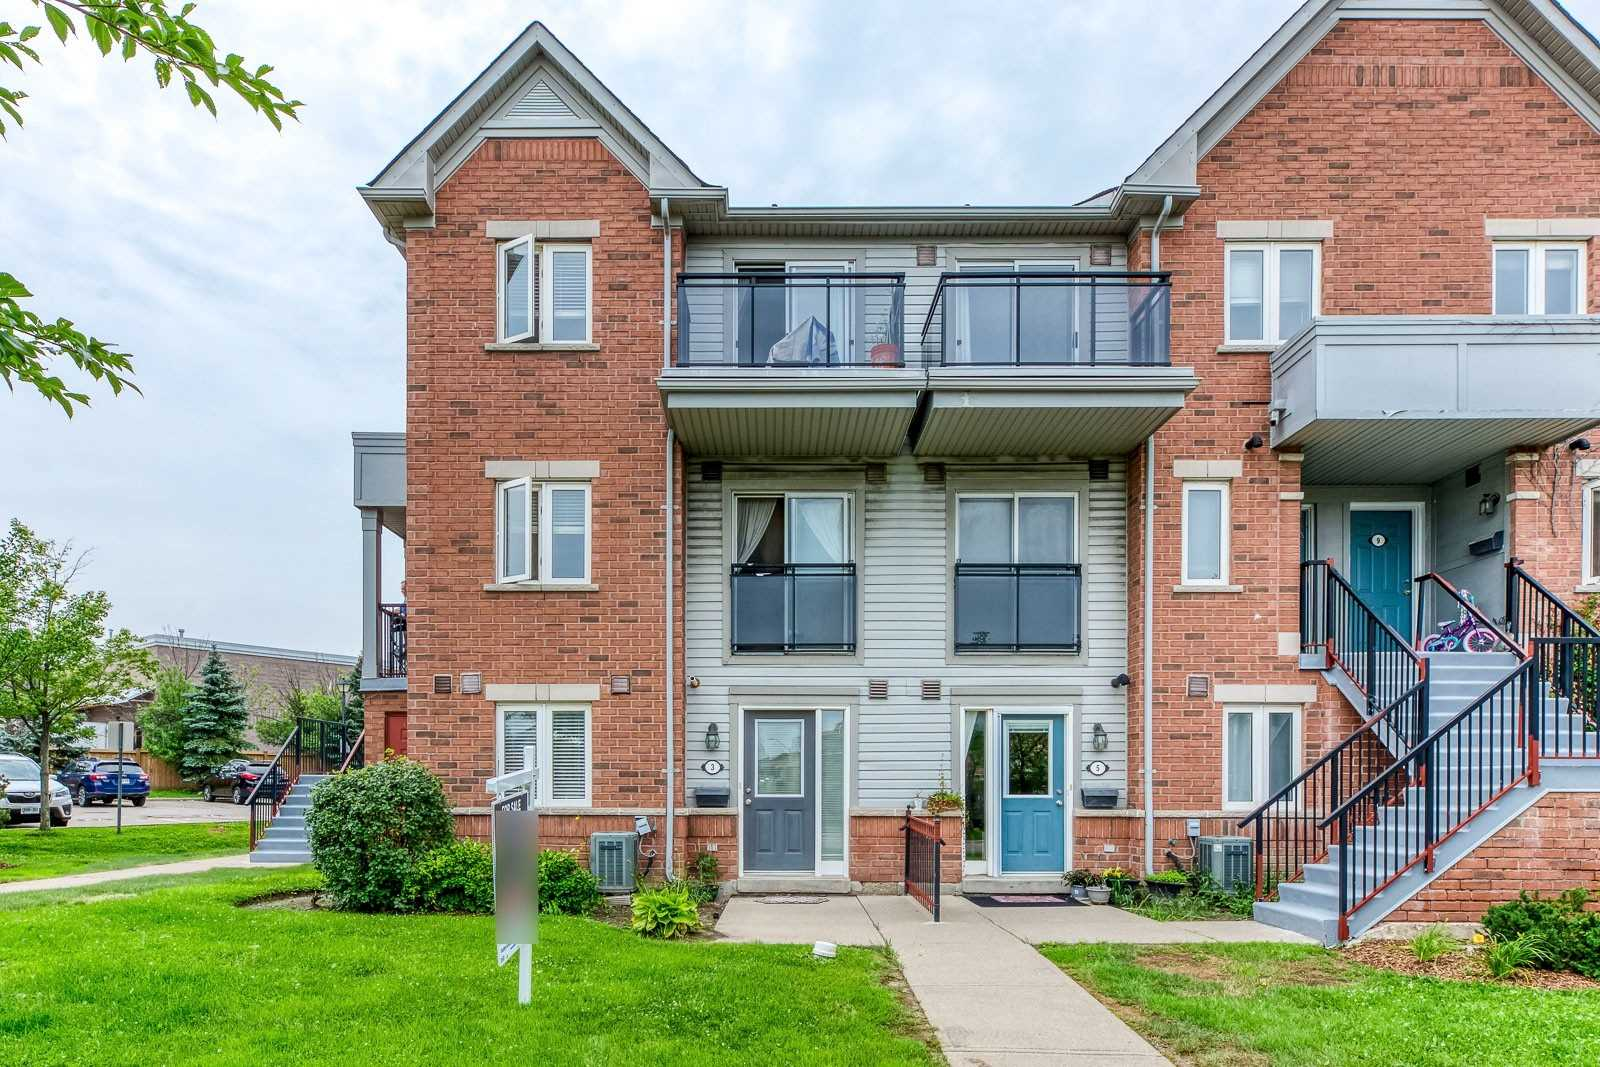 Condo Townhouse For Sale In Mississauga , 1 Bedroom Bedrooms, ,1 BathroomBathrooms,Condo Townhouse,For Sale,3,Guildwood